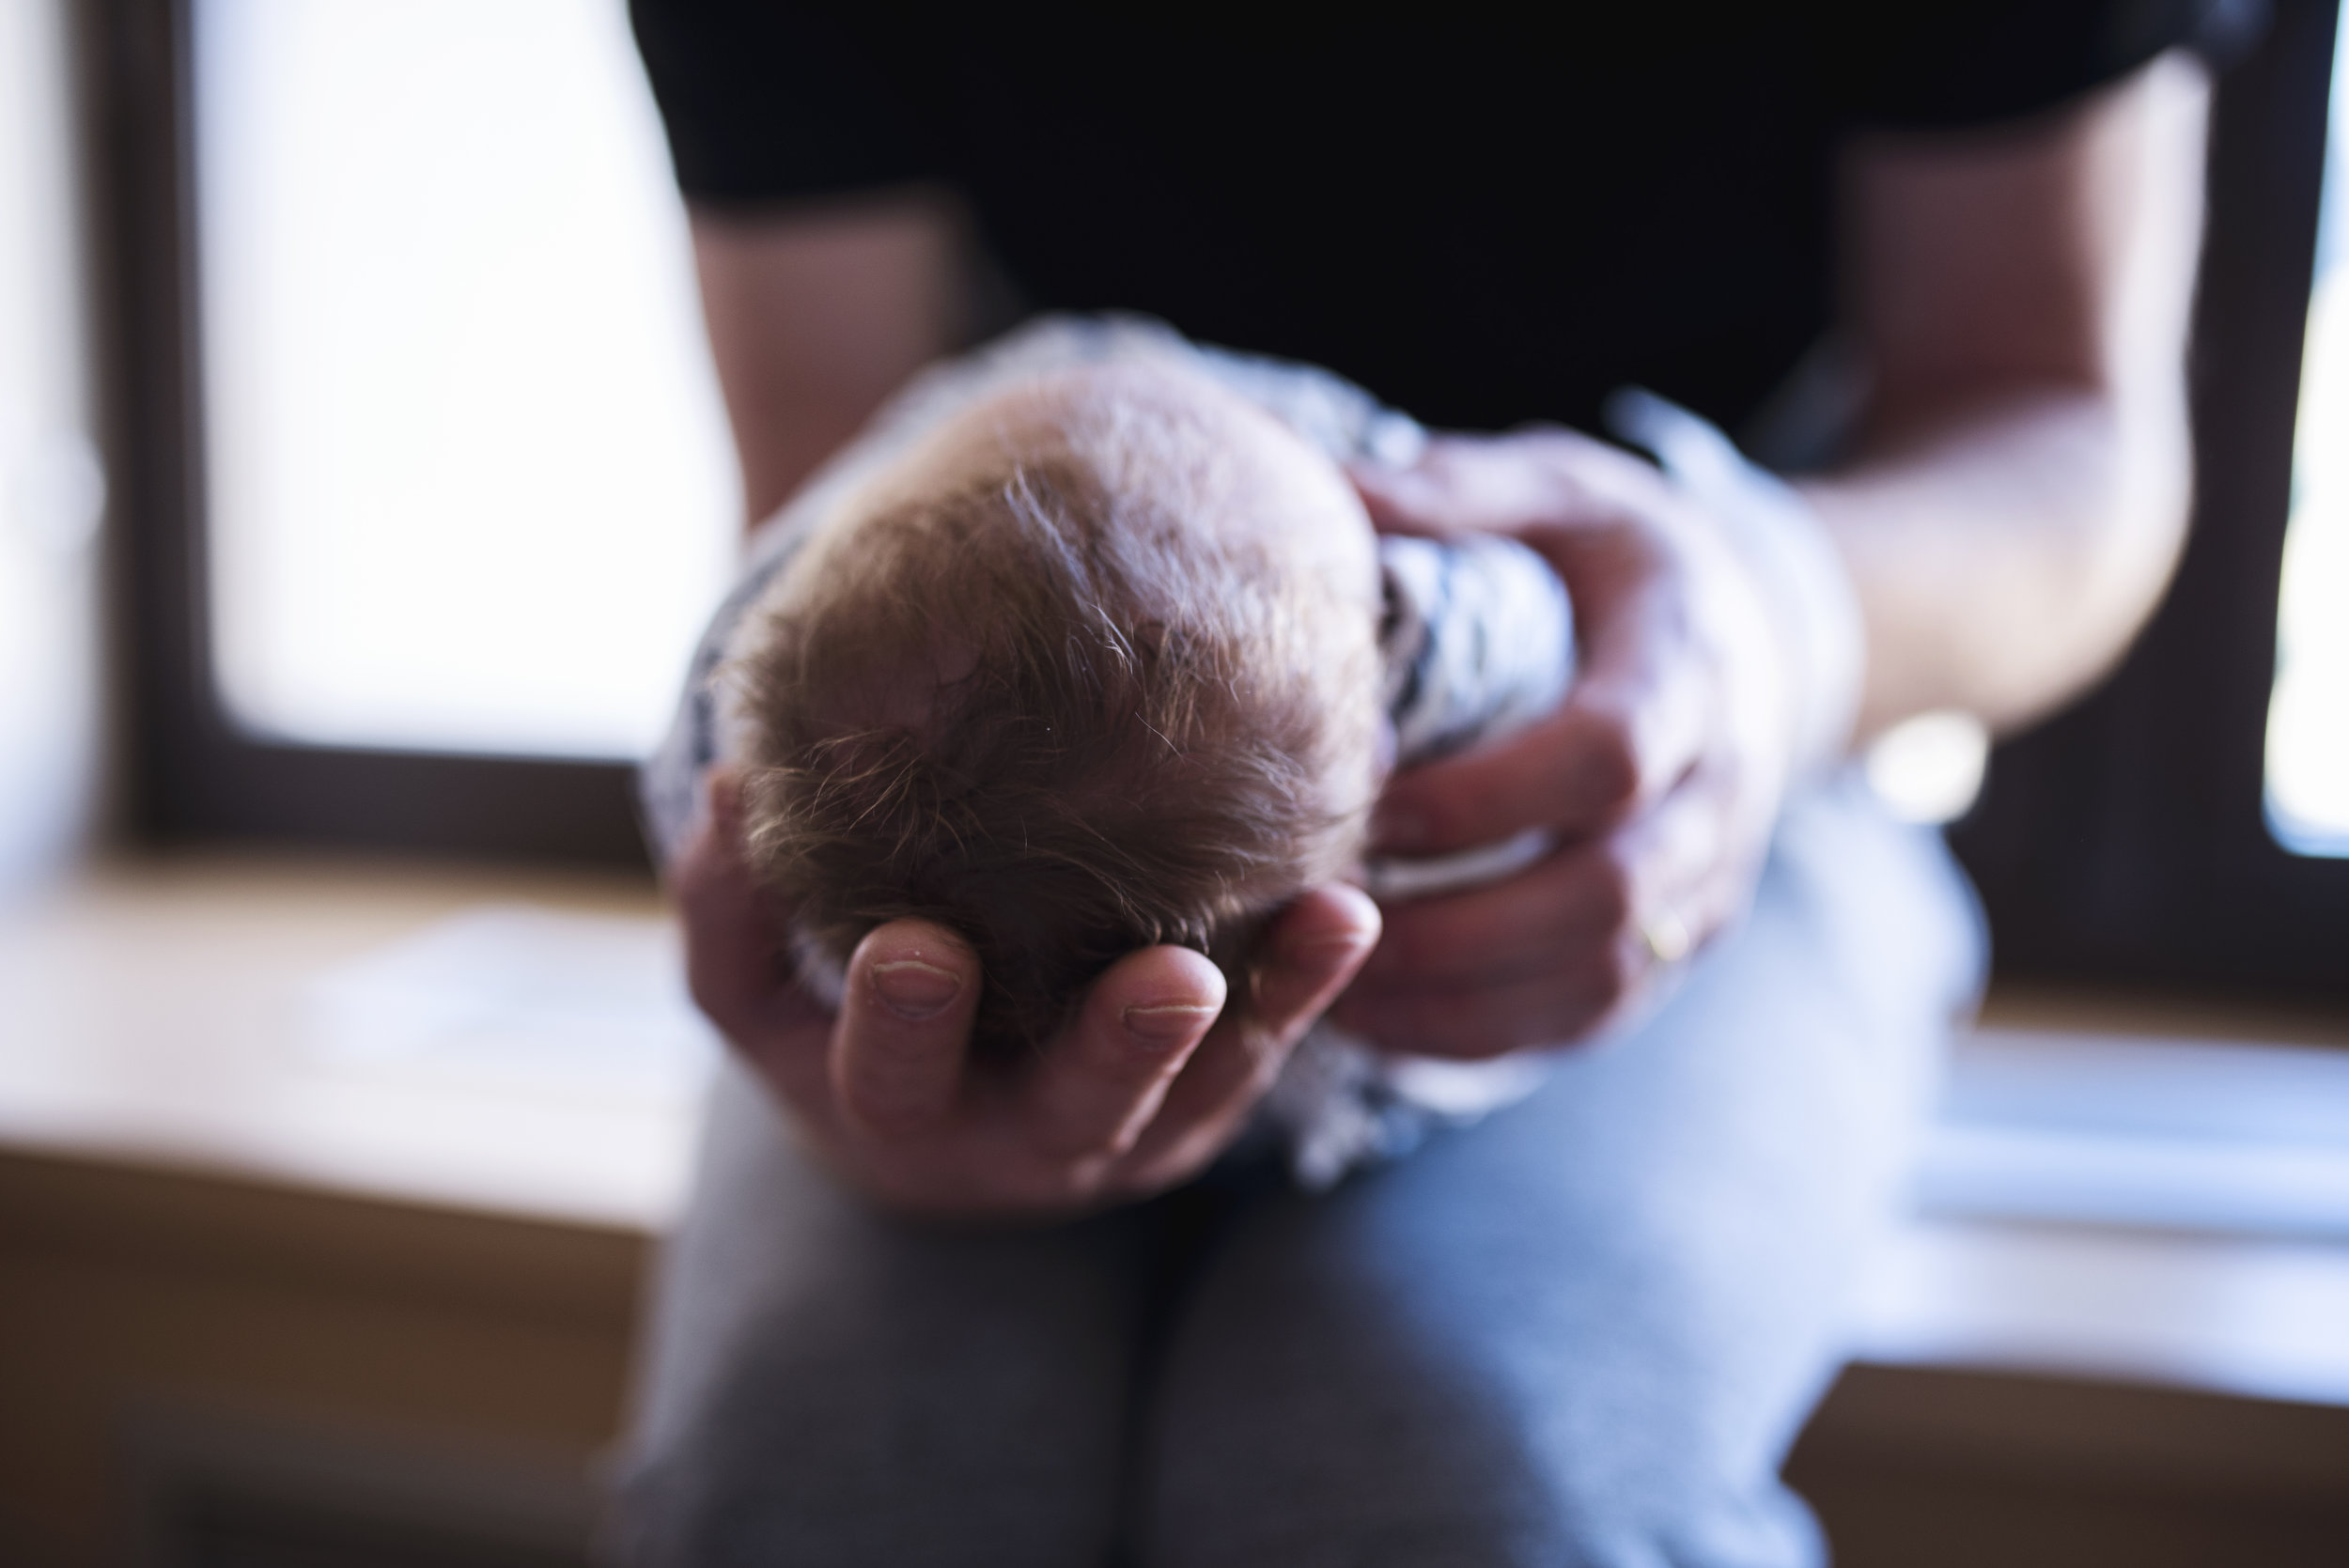 Seattle Newborn photographer baby's head held in dad's hands